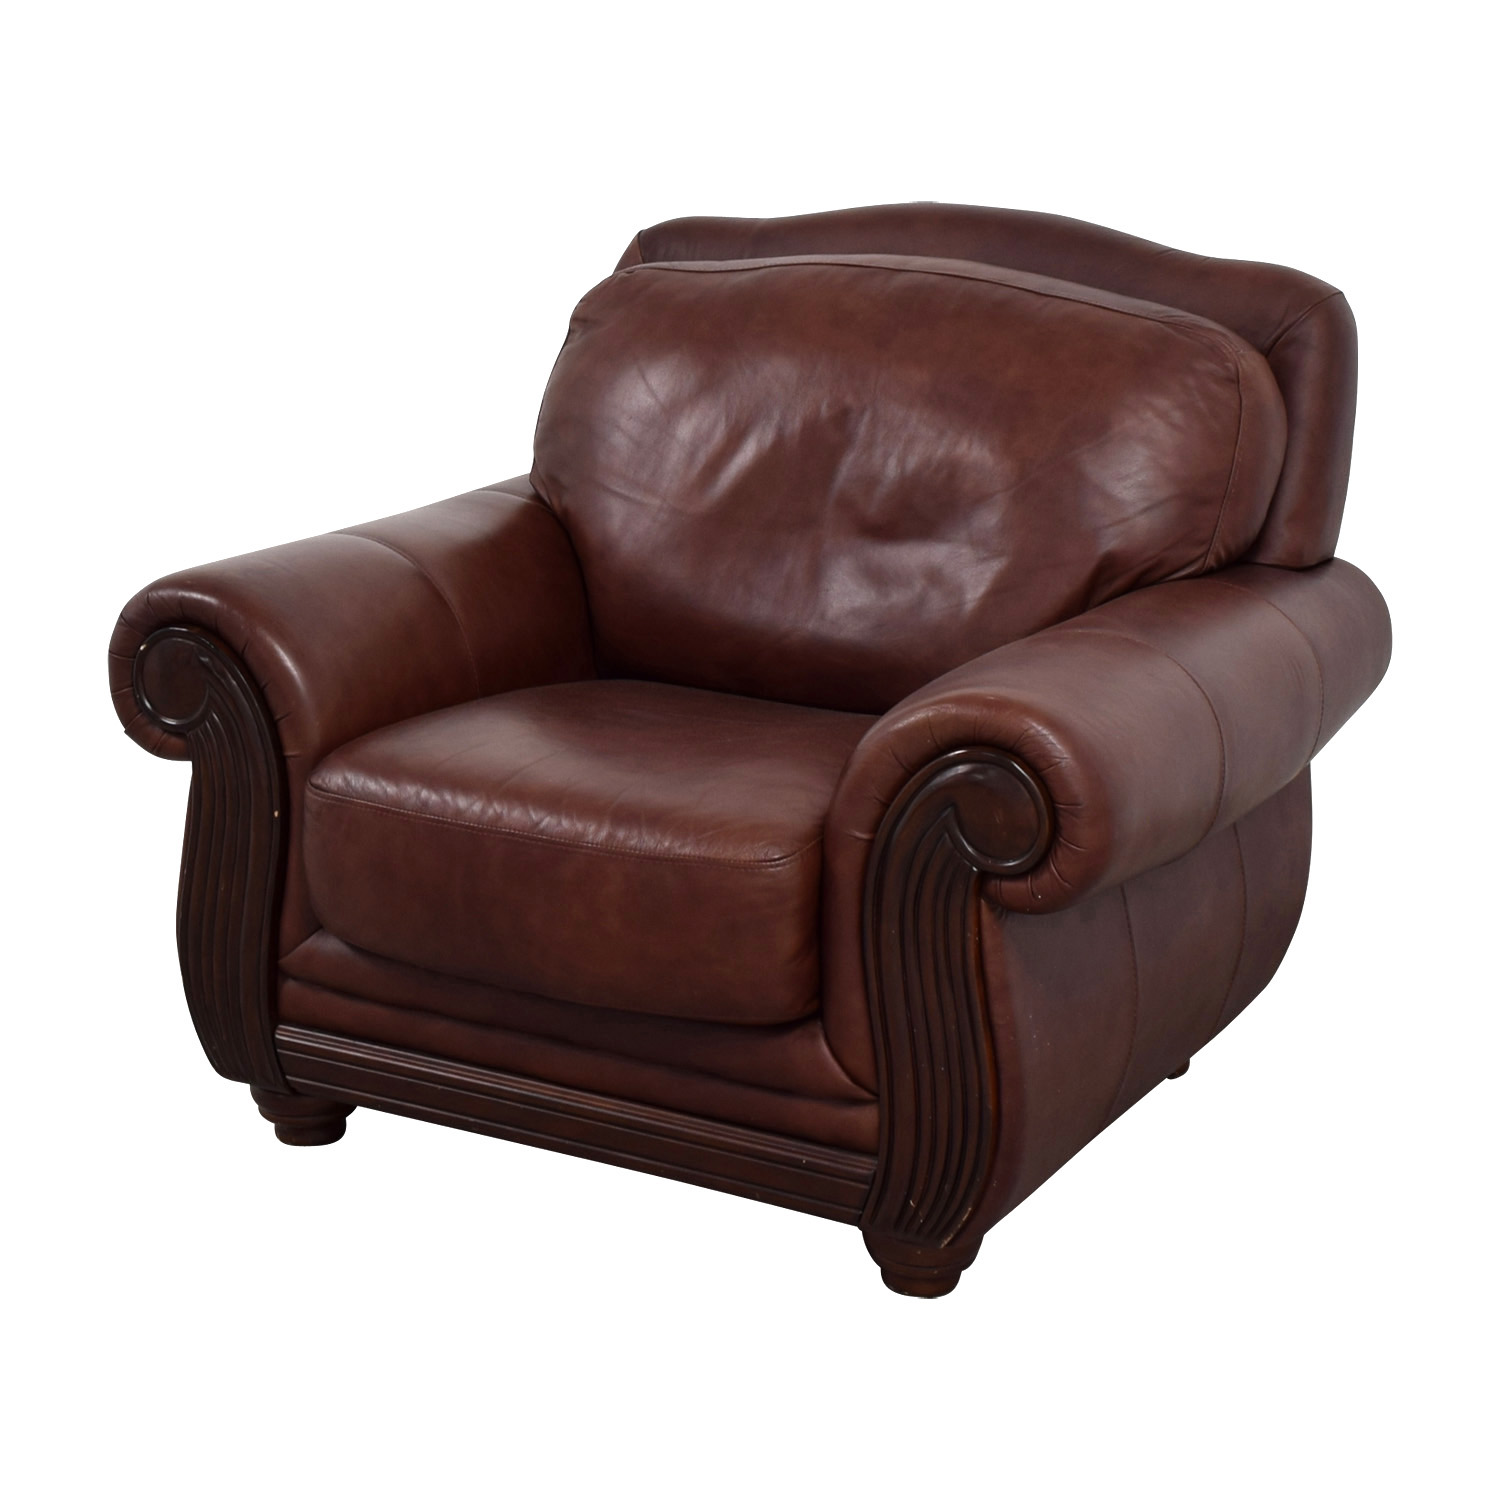 accent chairs to go with brown leather sofa purple velvet 69 off rooms